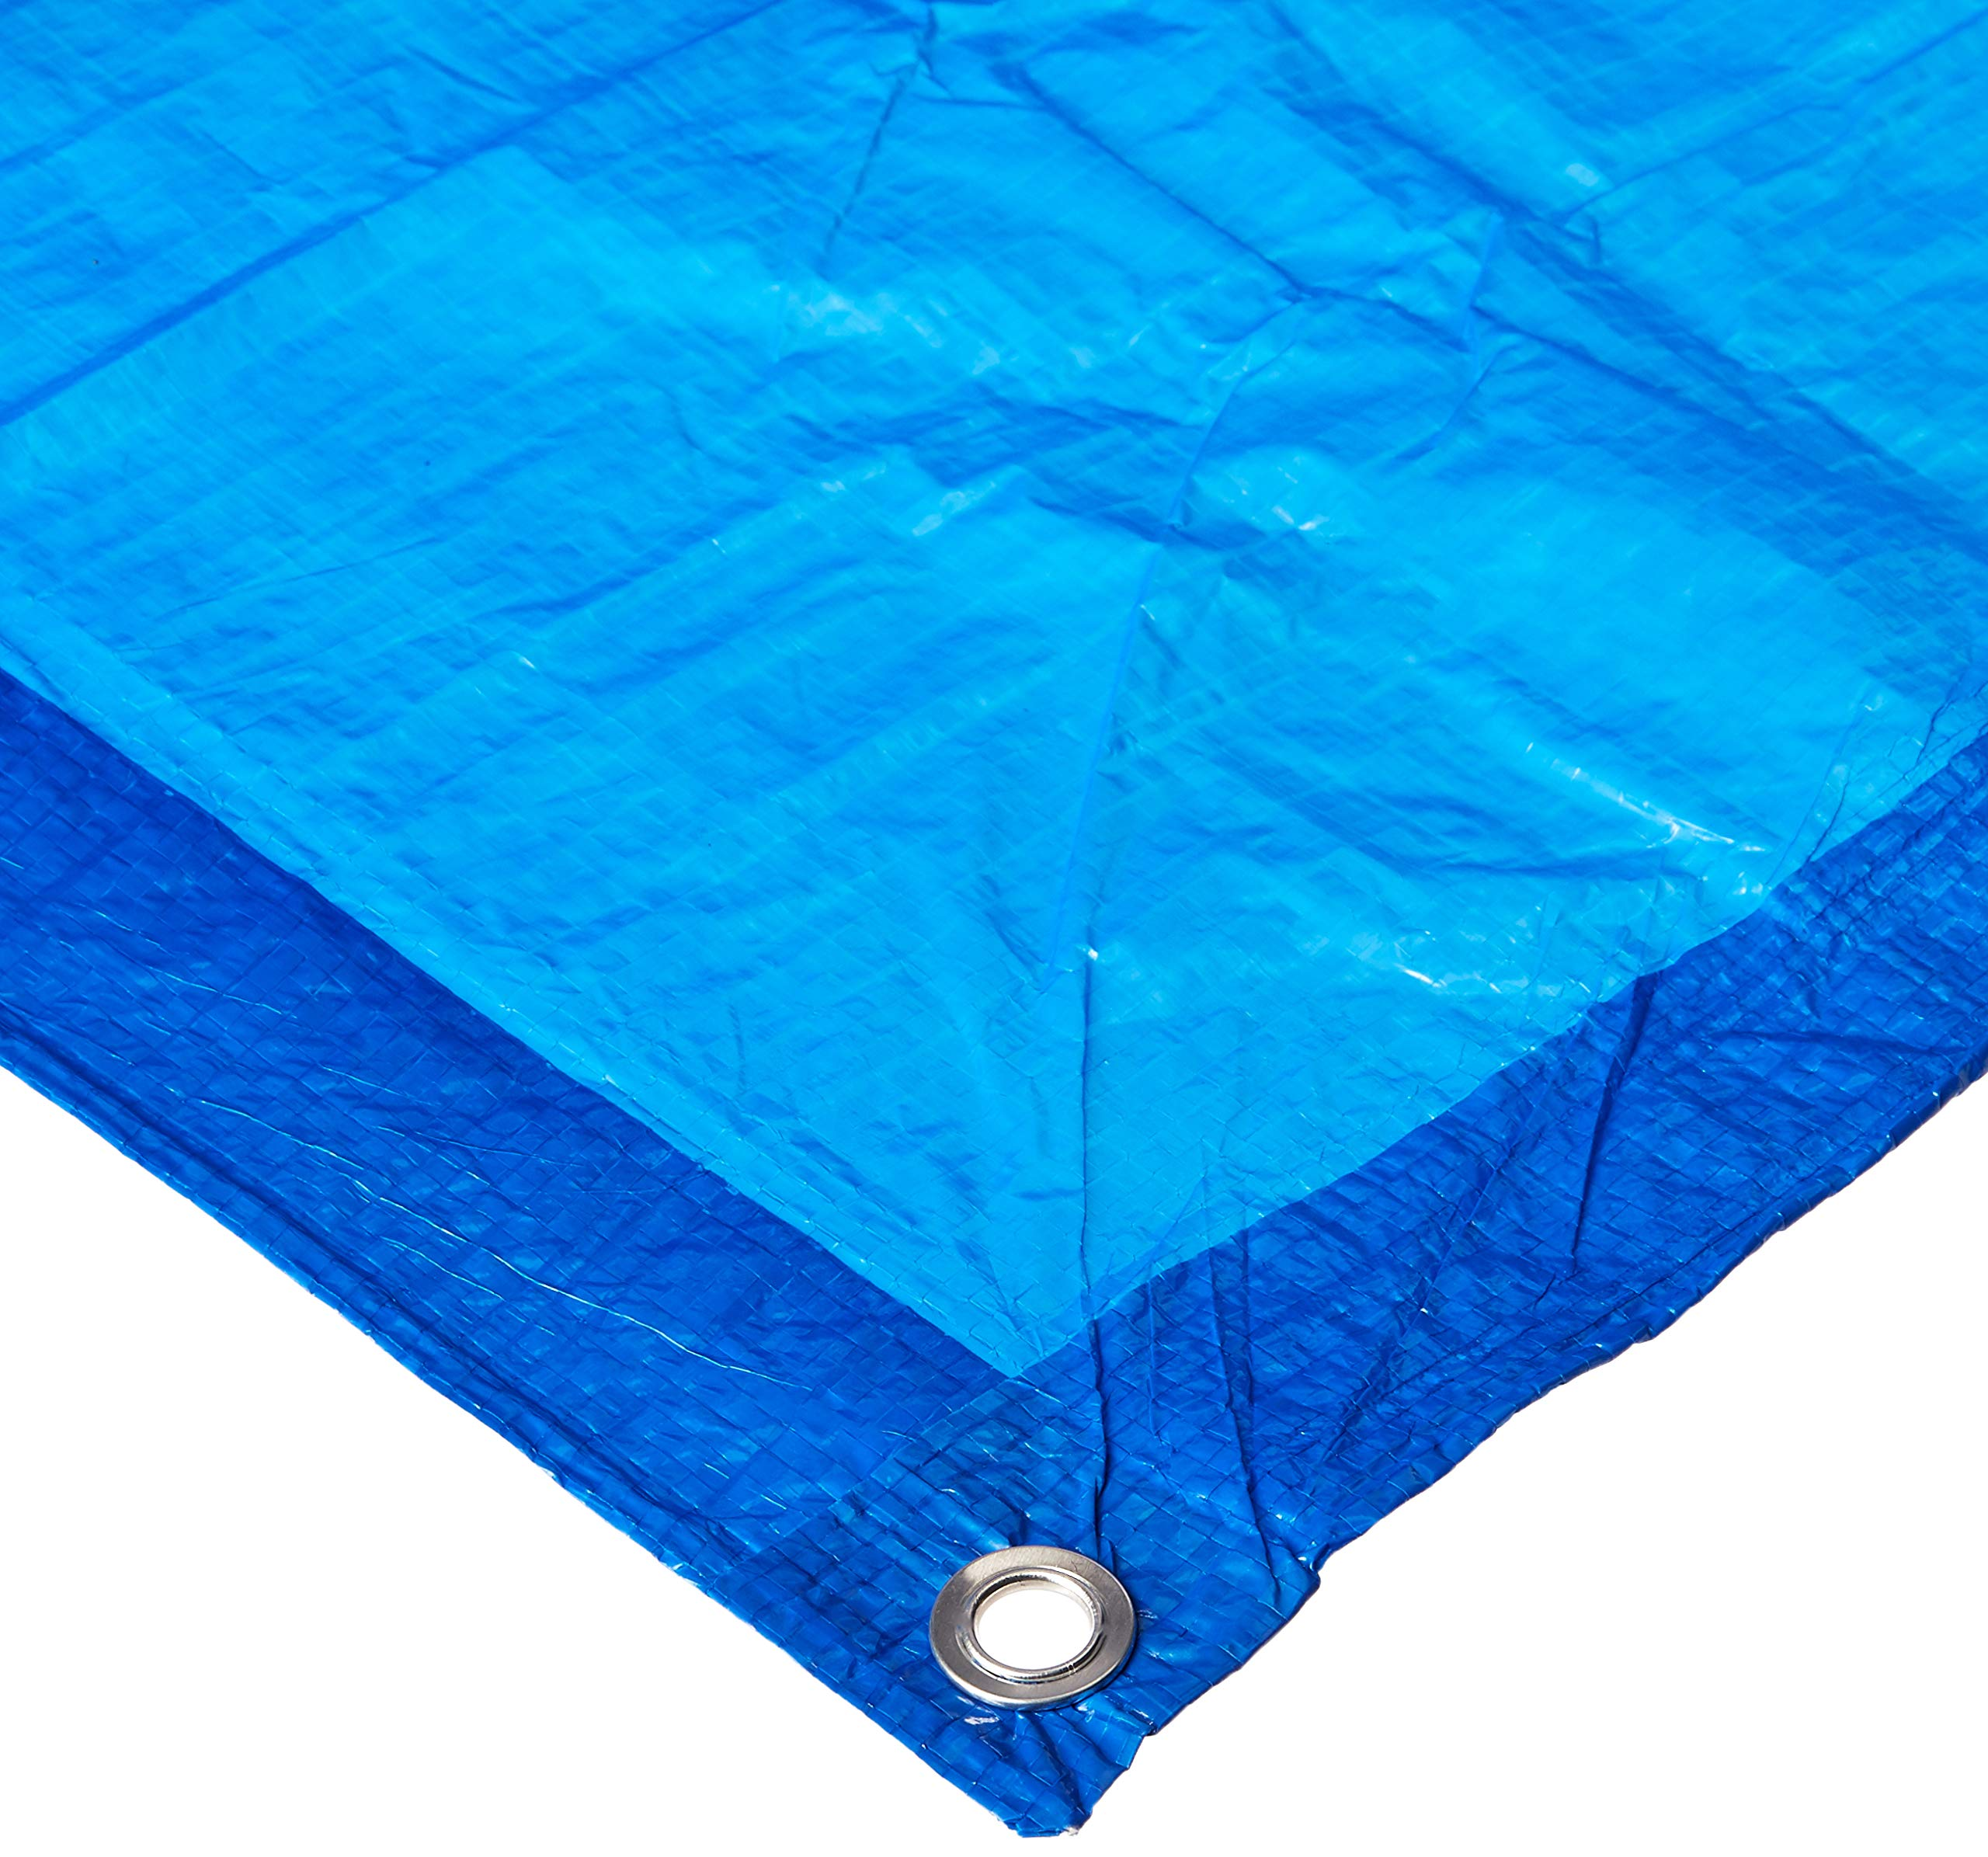 TOOLBASIX T1216BB70 Light Duty Tarp, 16-Feet x 12-Feet, Blue